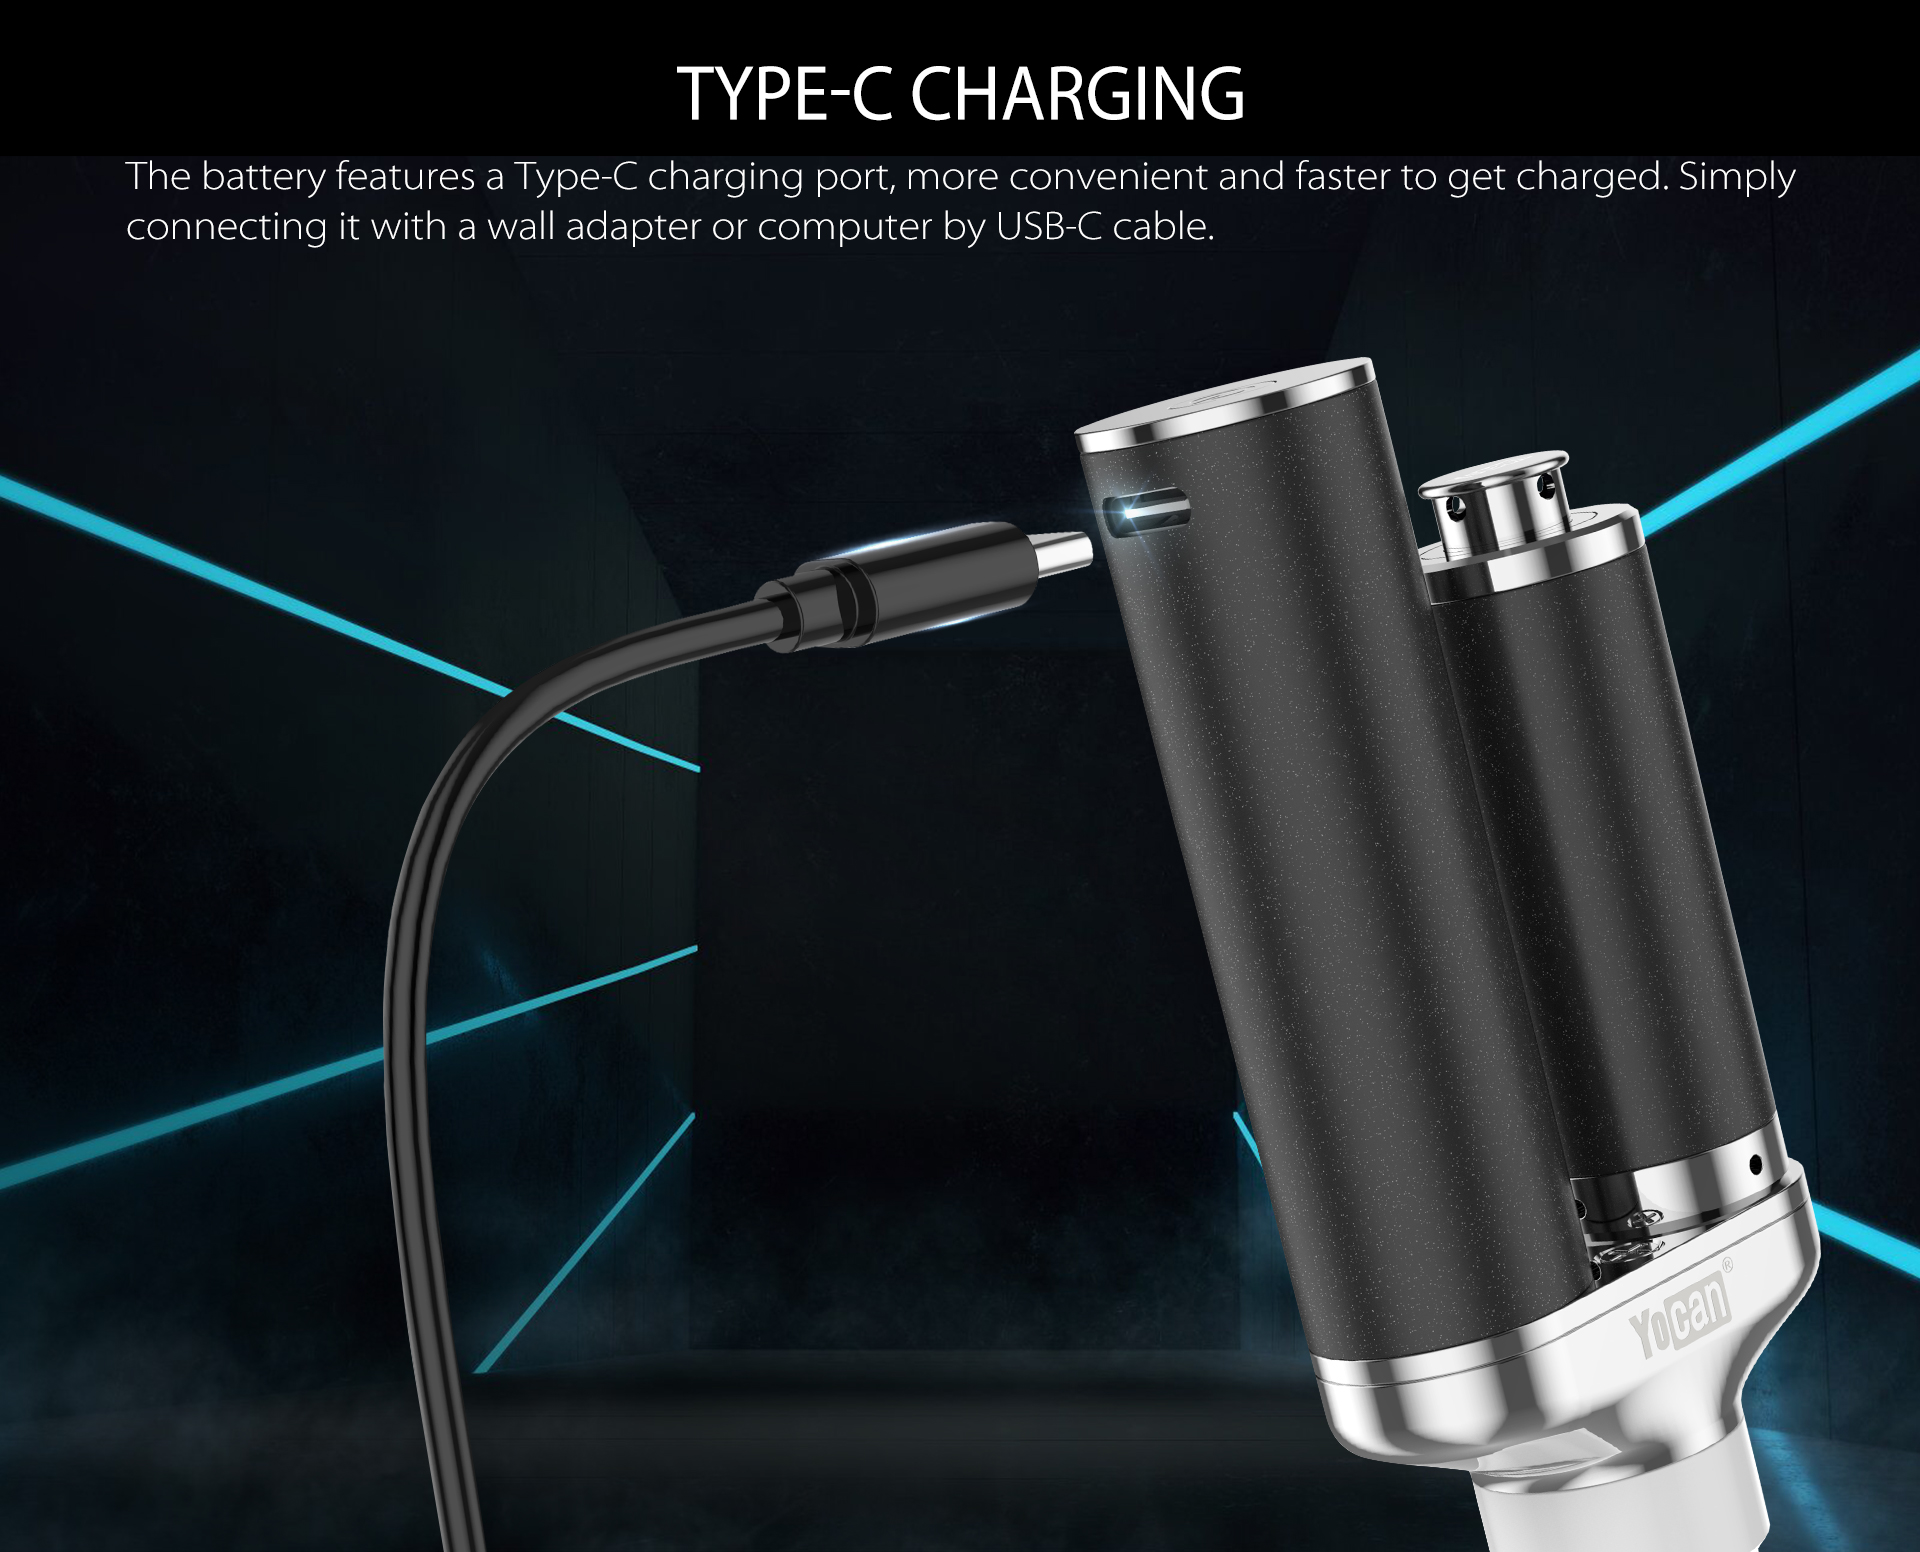 Yocan Torch XL features a type-ch charging port.